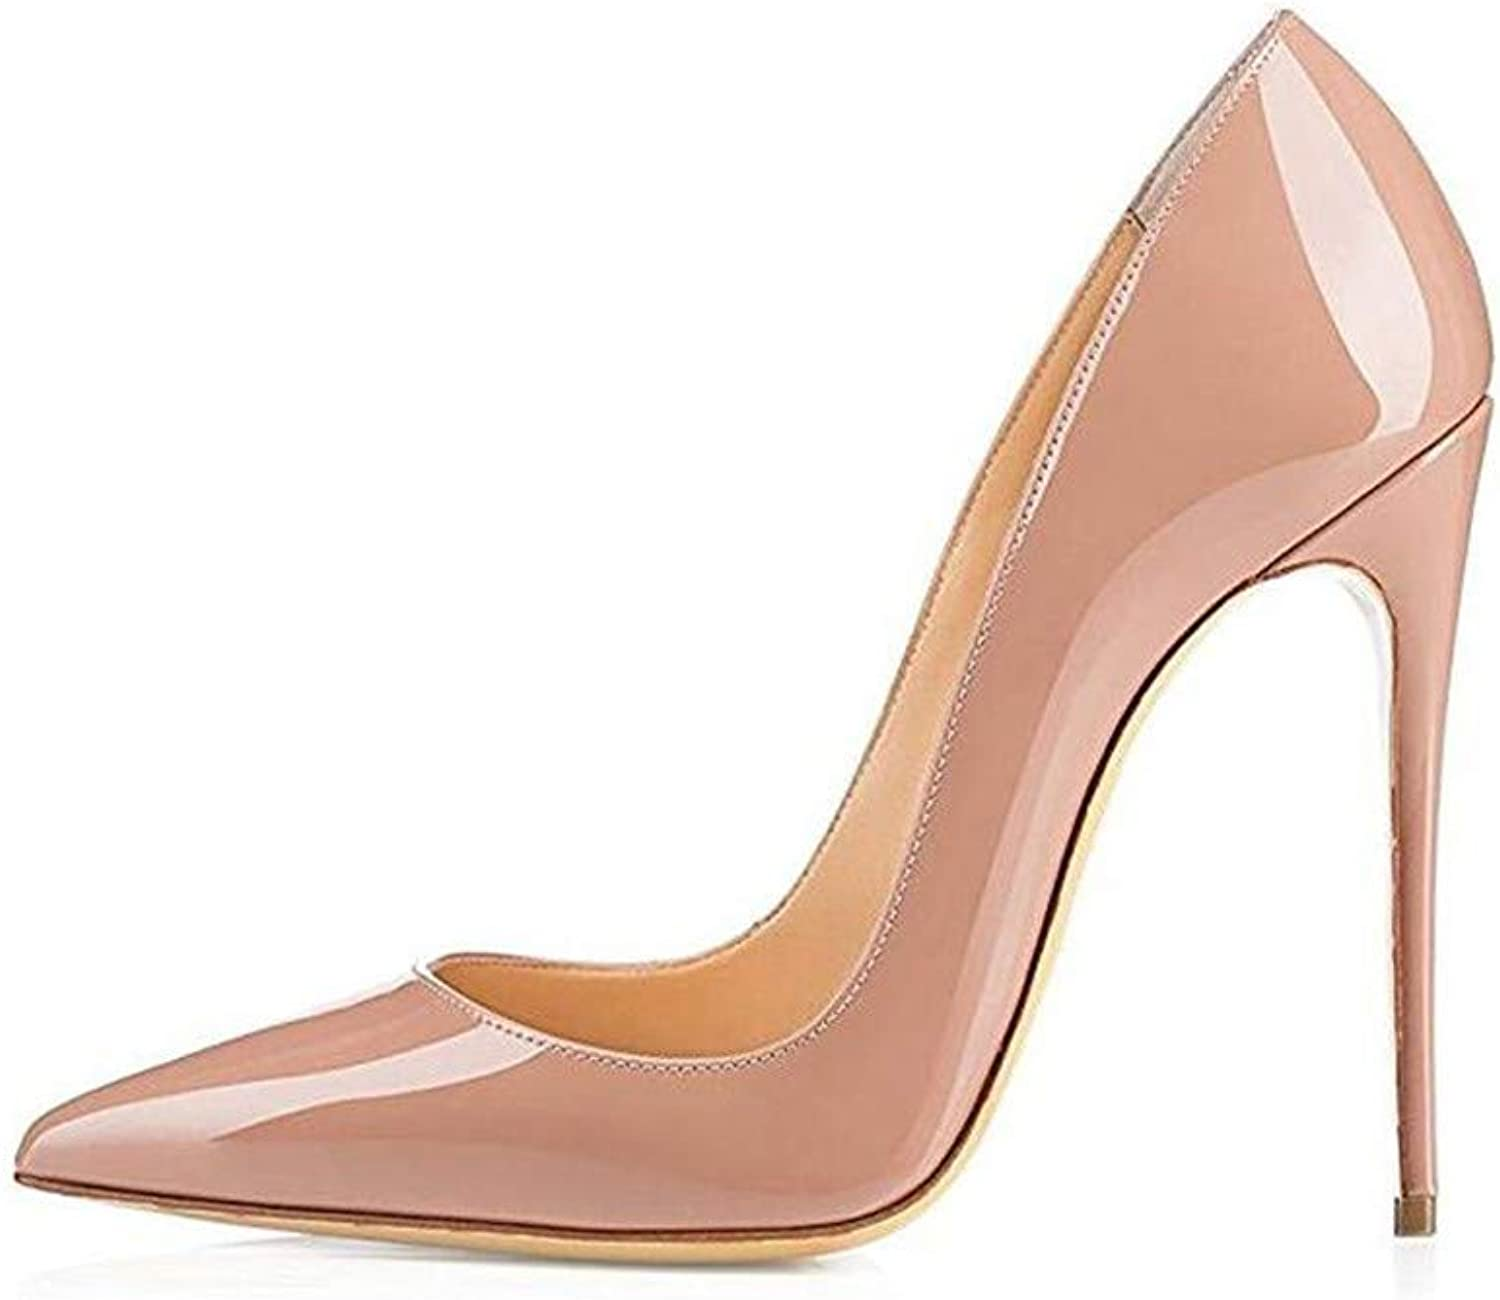 Evierup shoes Nude Heels Women Pumps High Heels shoes Stiletto Pointed shoes Sexy Party